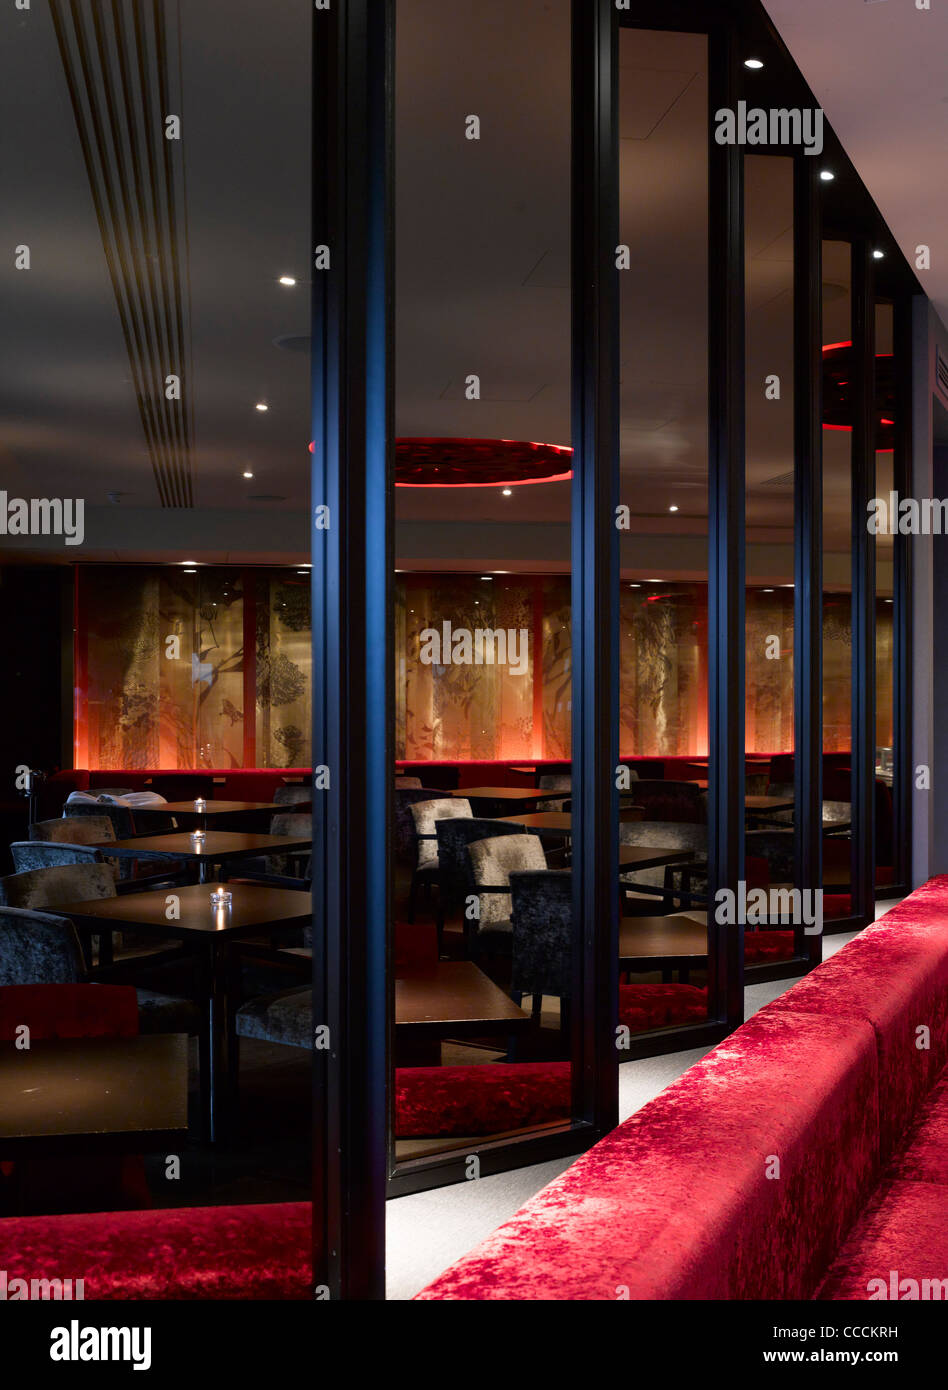 Aqua Restaraunt, London, Glamorous, 2011-seating - Stock Image